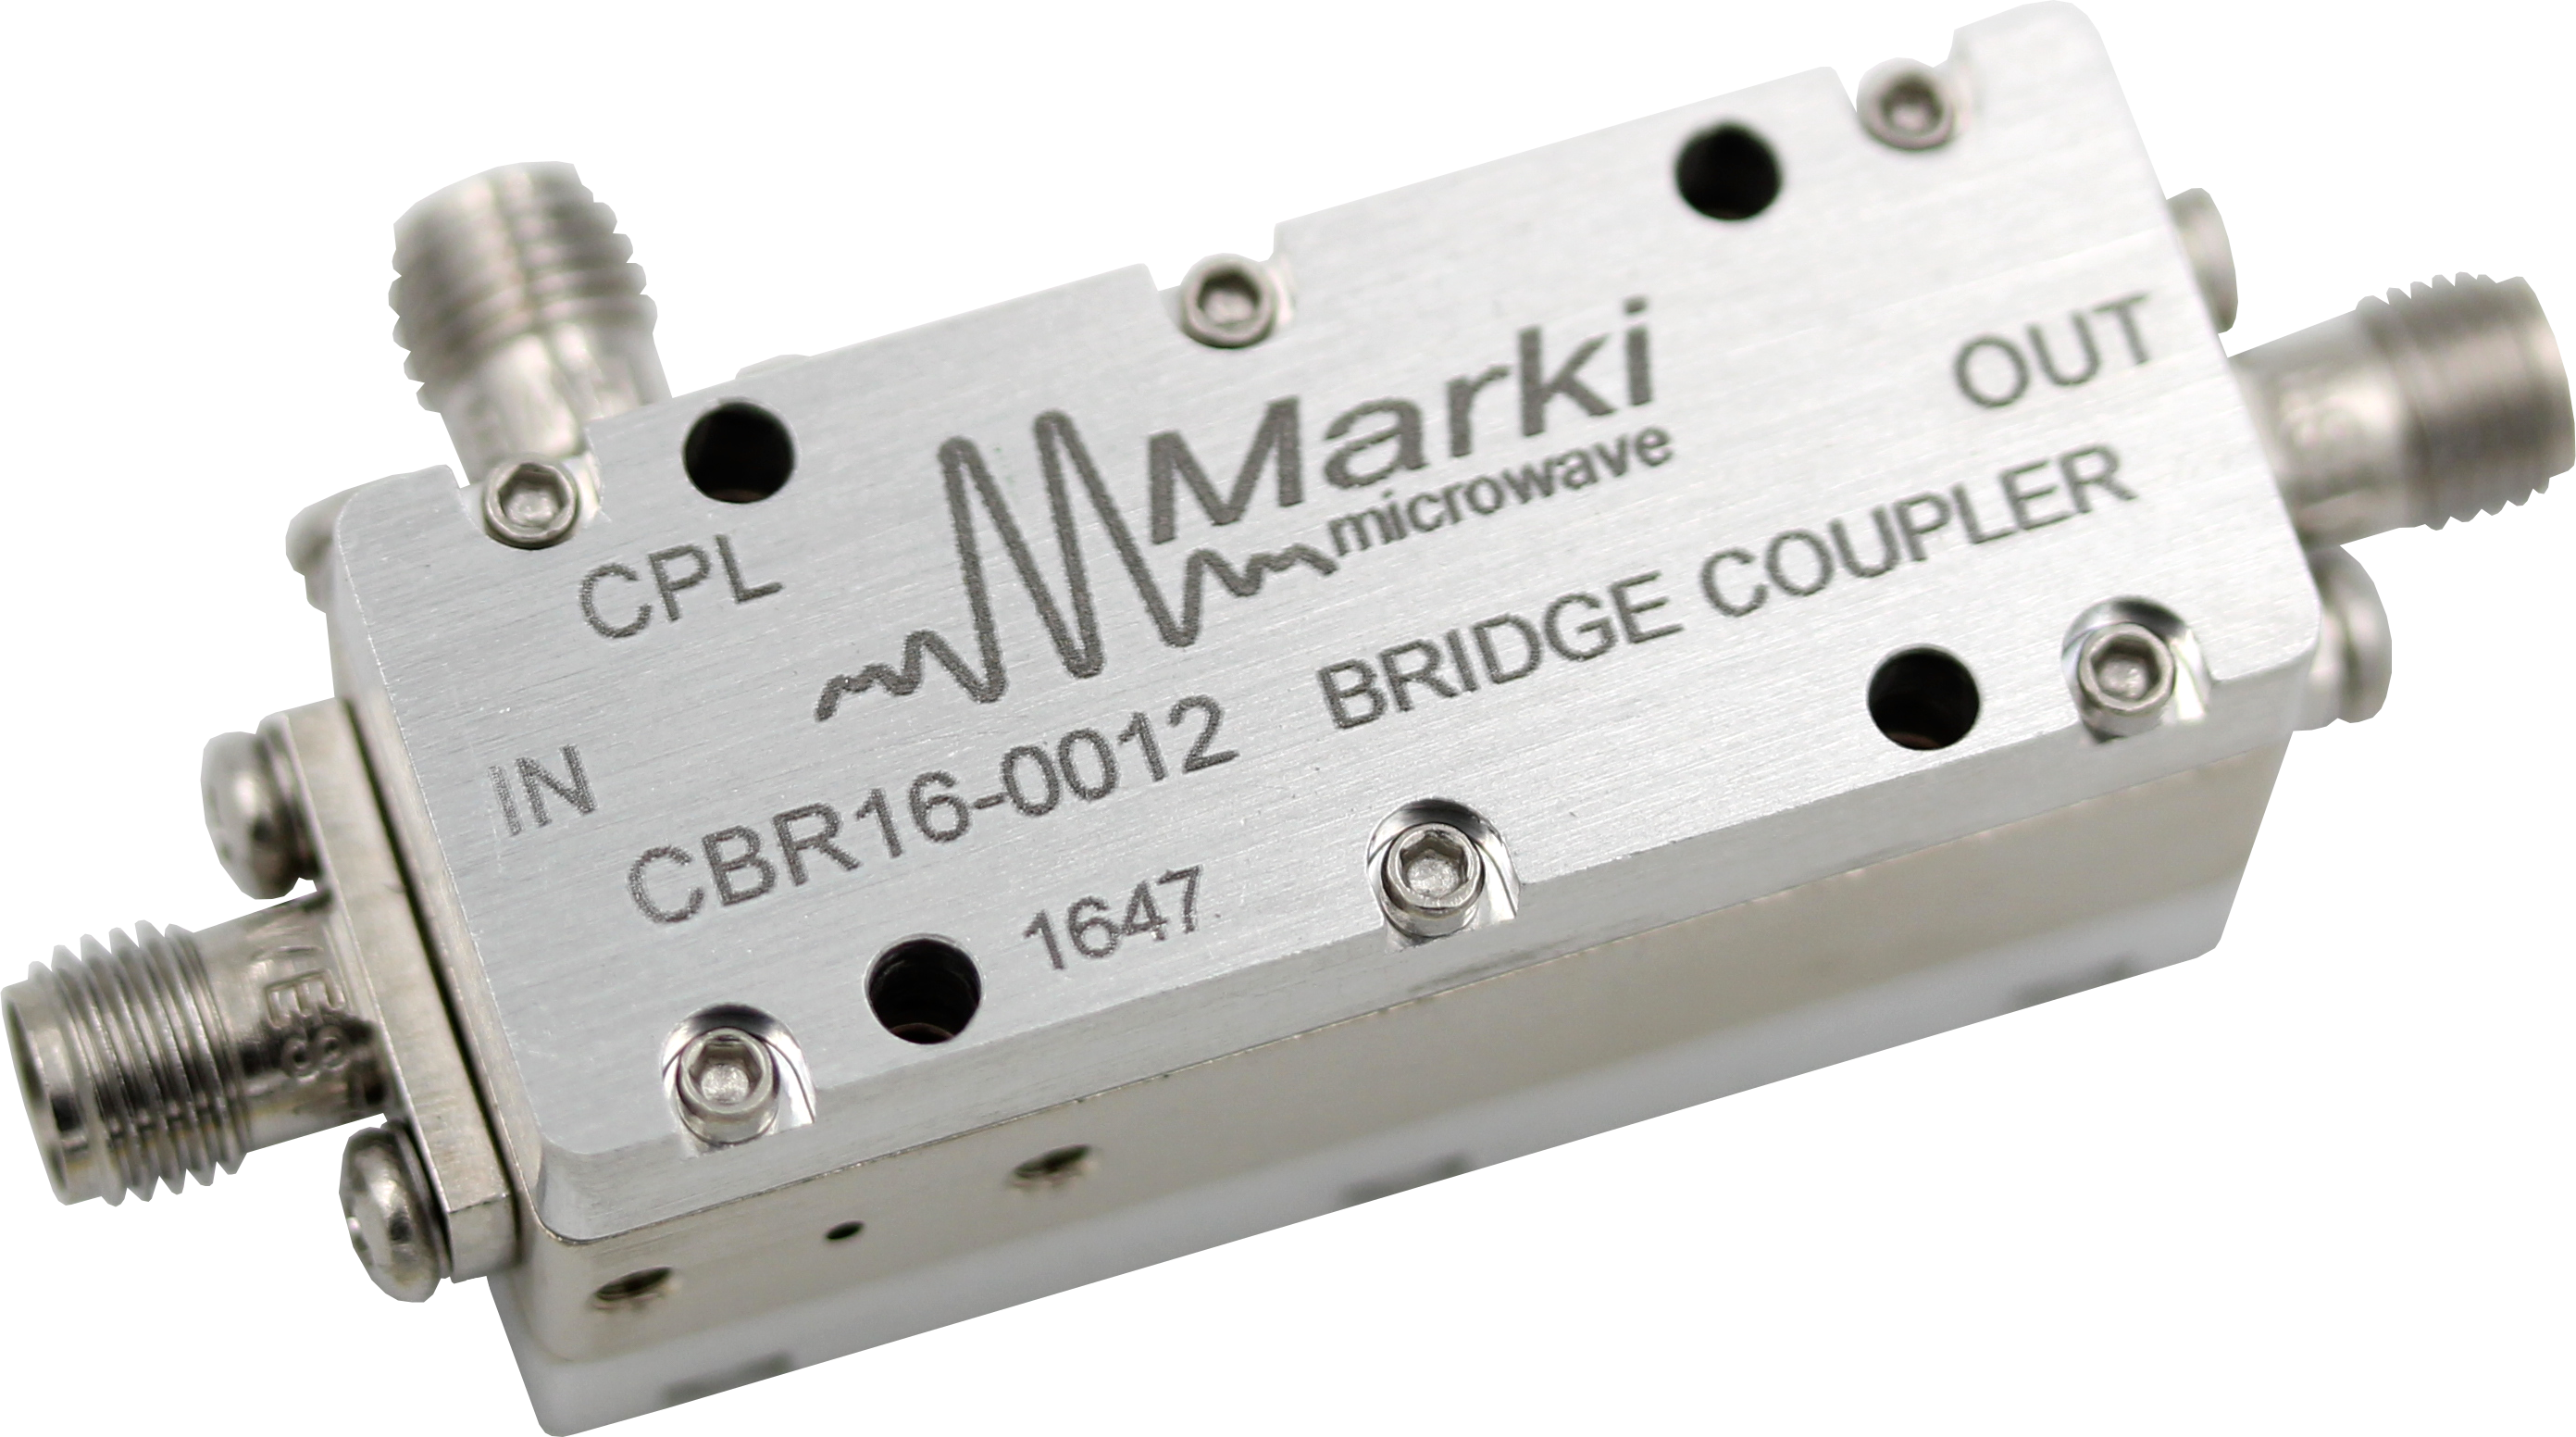 CBR16-0012 High Directivity Bridge Coupler image